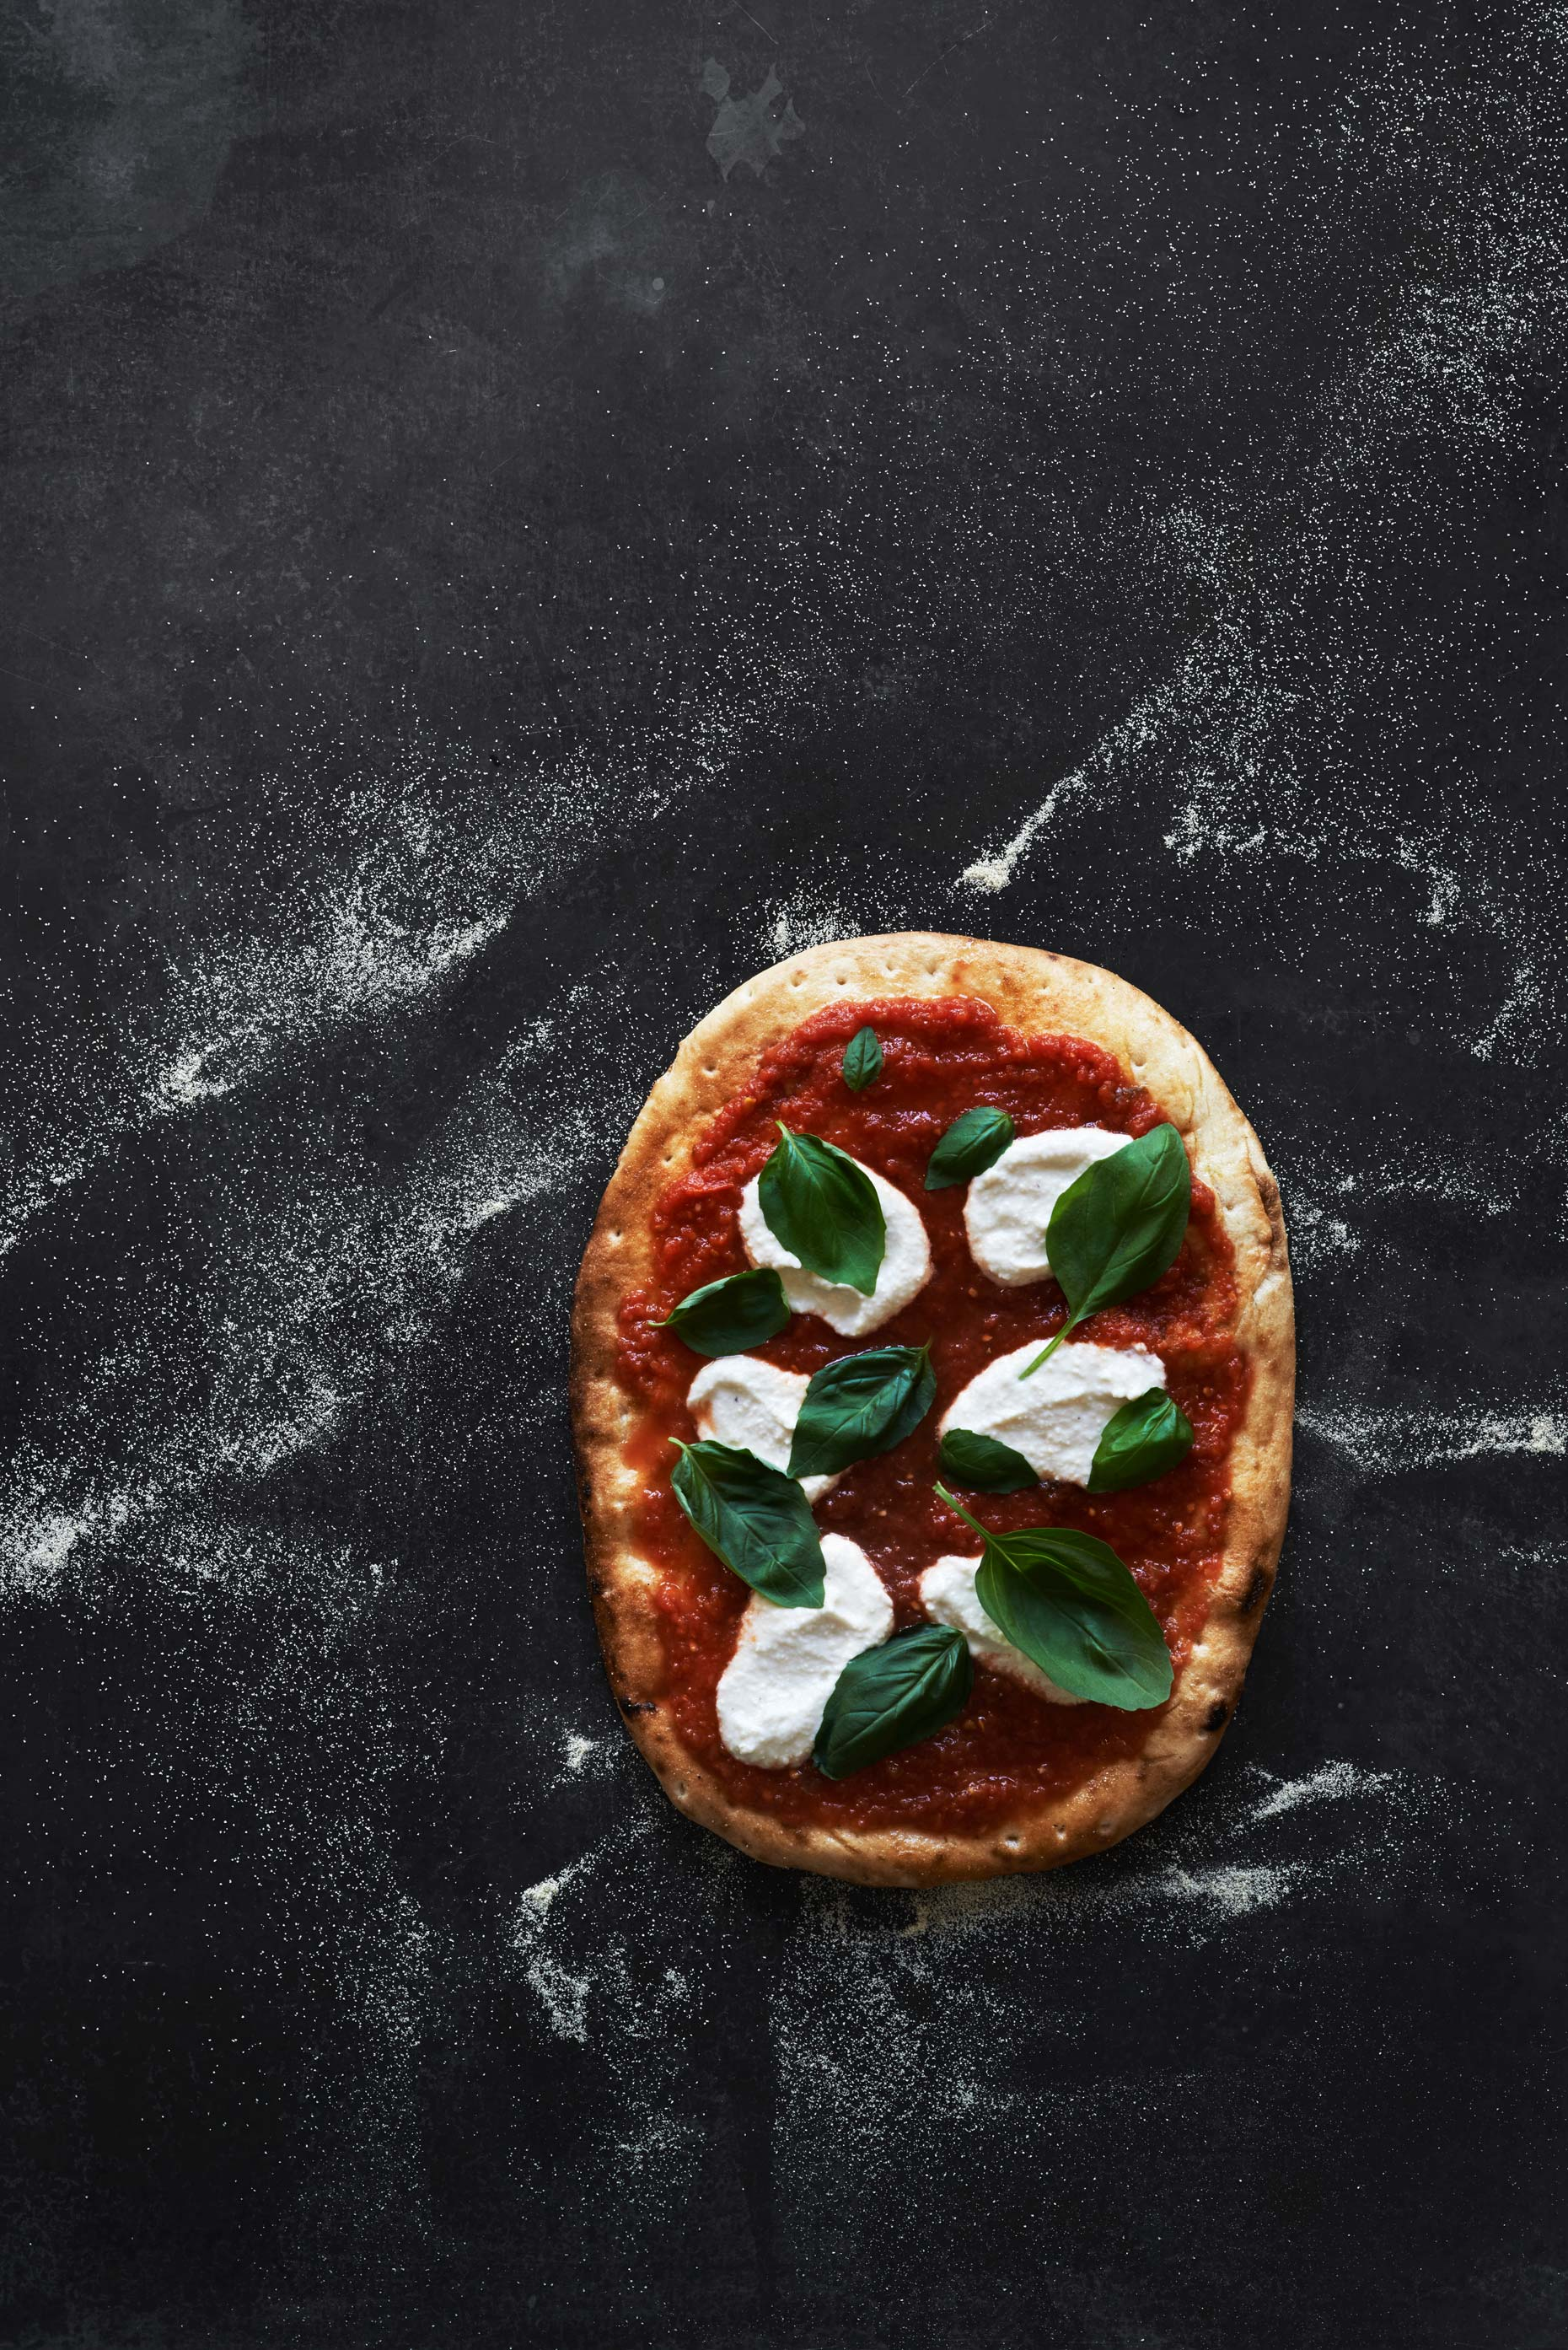 AdrianMueller_Photographer_Pizza_10